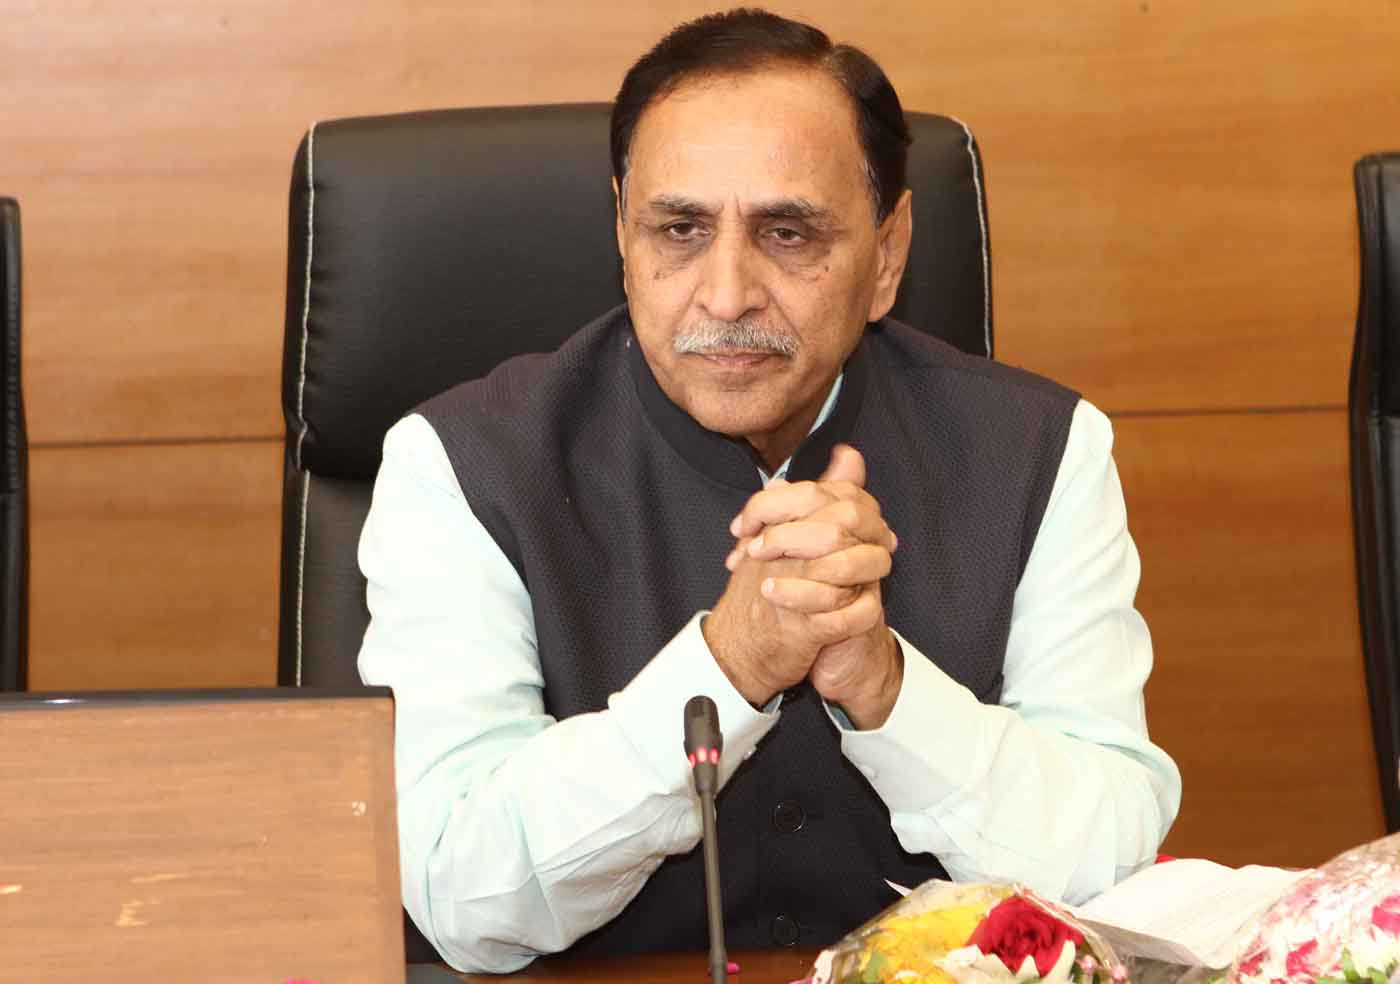 Rupani declares closure of alert for Cyclone Vayu in Gujarat